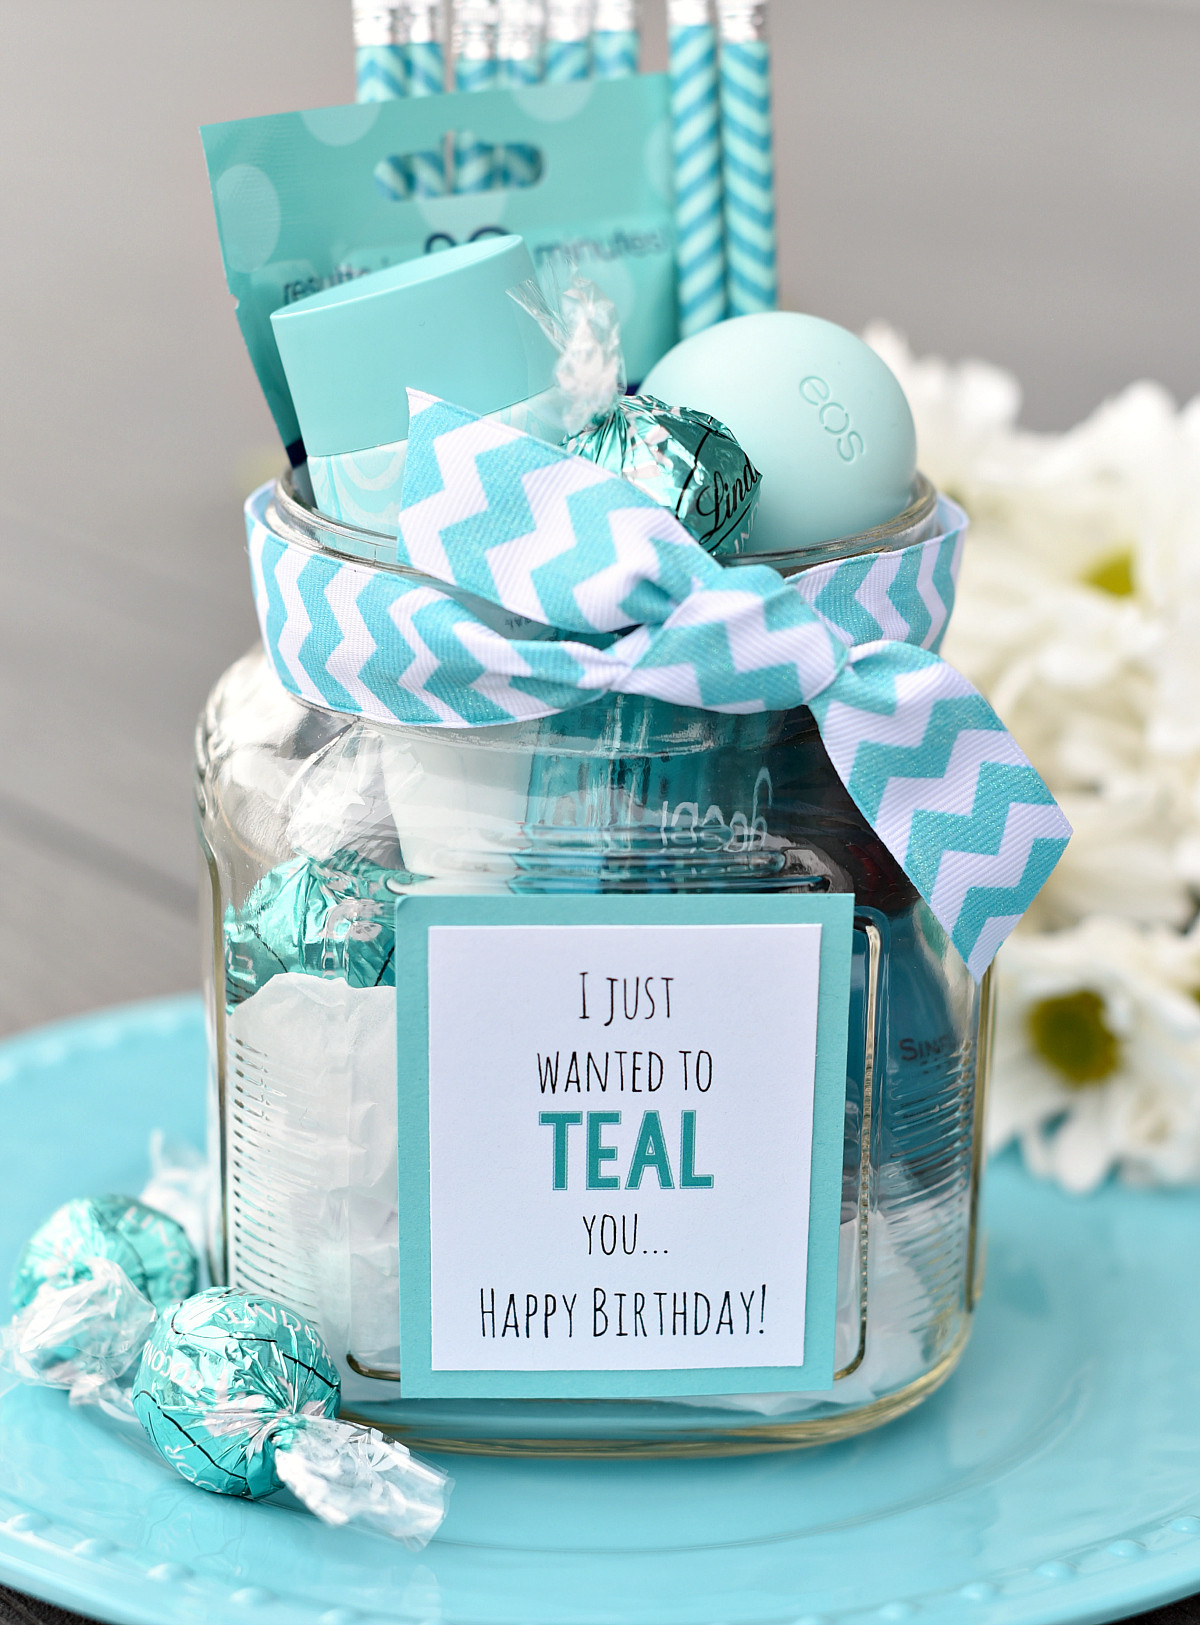 Gift Basket Ideas For Friends Birthday  Teal Birthday Gift Idea for Friends – Fun Squared